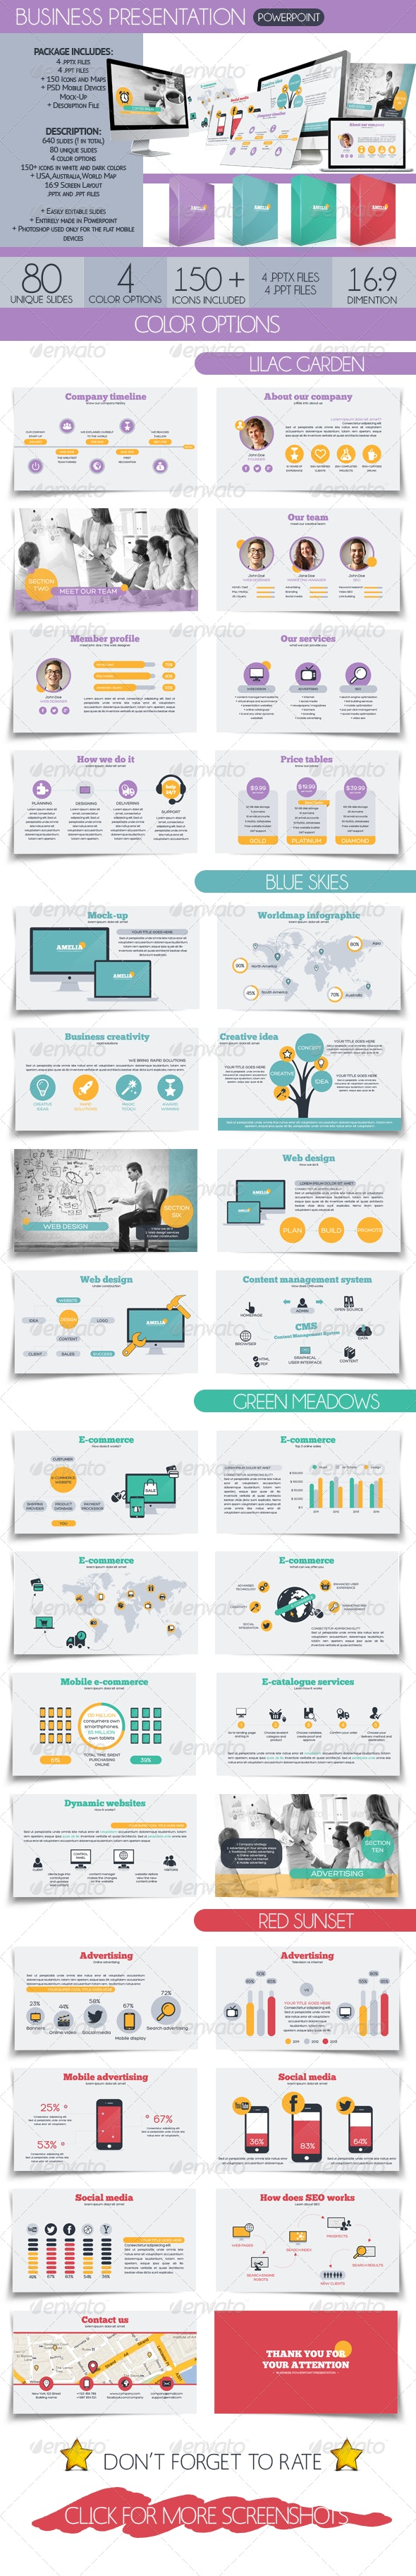 Amelia Business Presentation - Business PowerPoint Templates